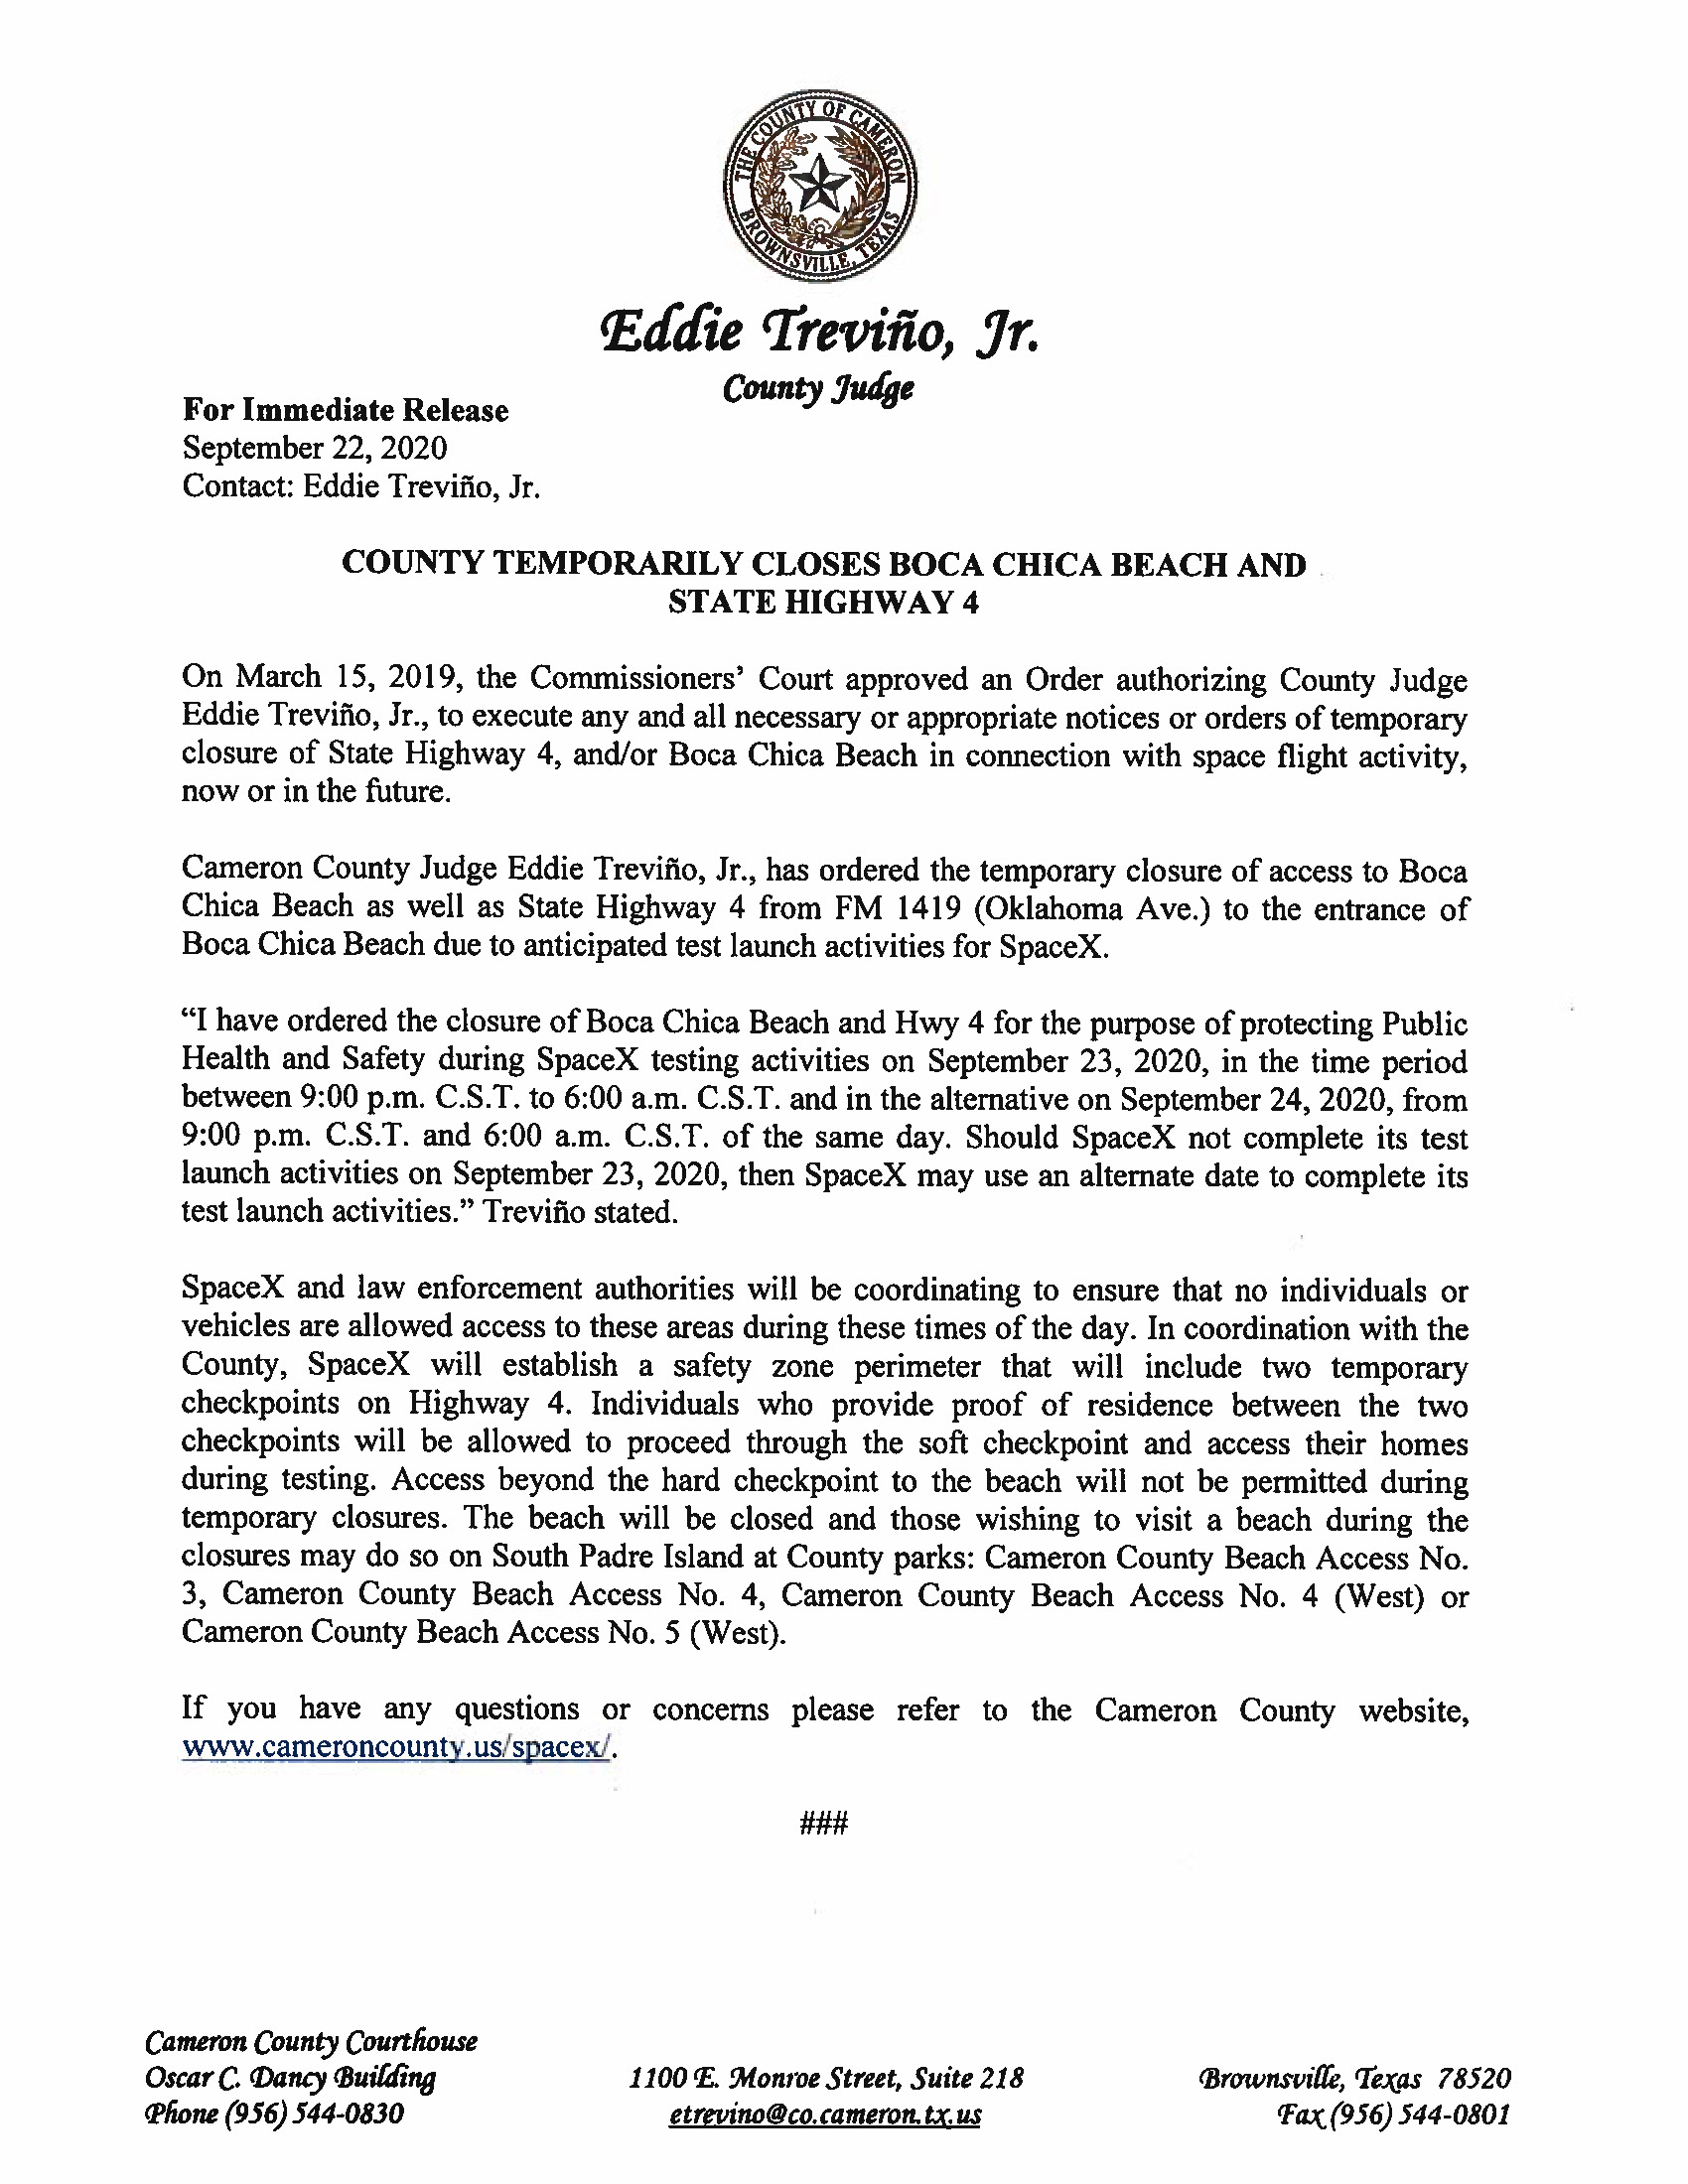 Press Release In English And Spanish 9.2324.2020 Page 1